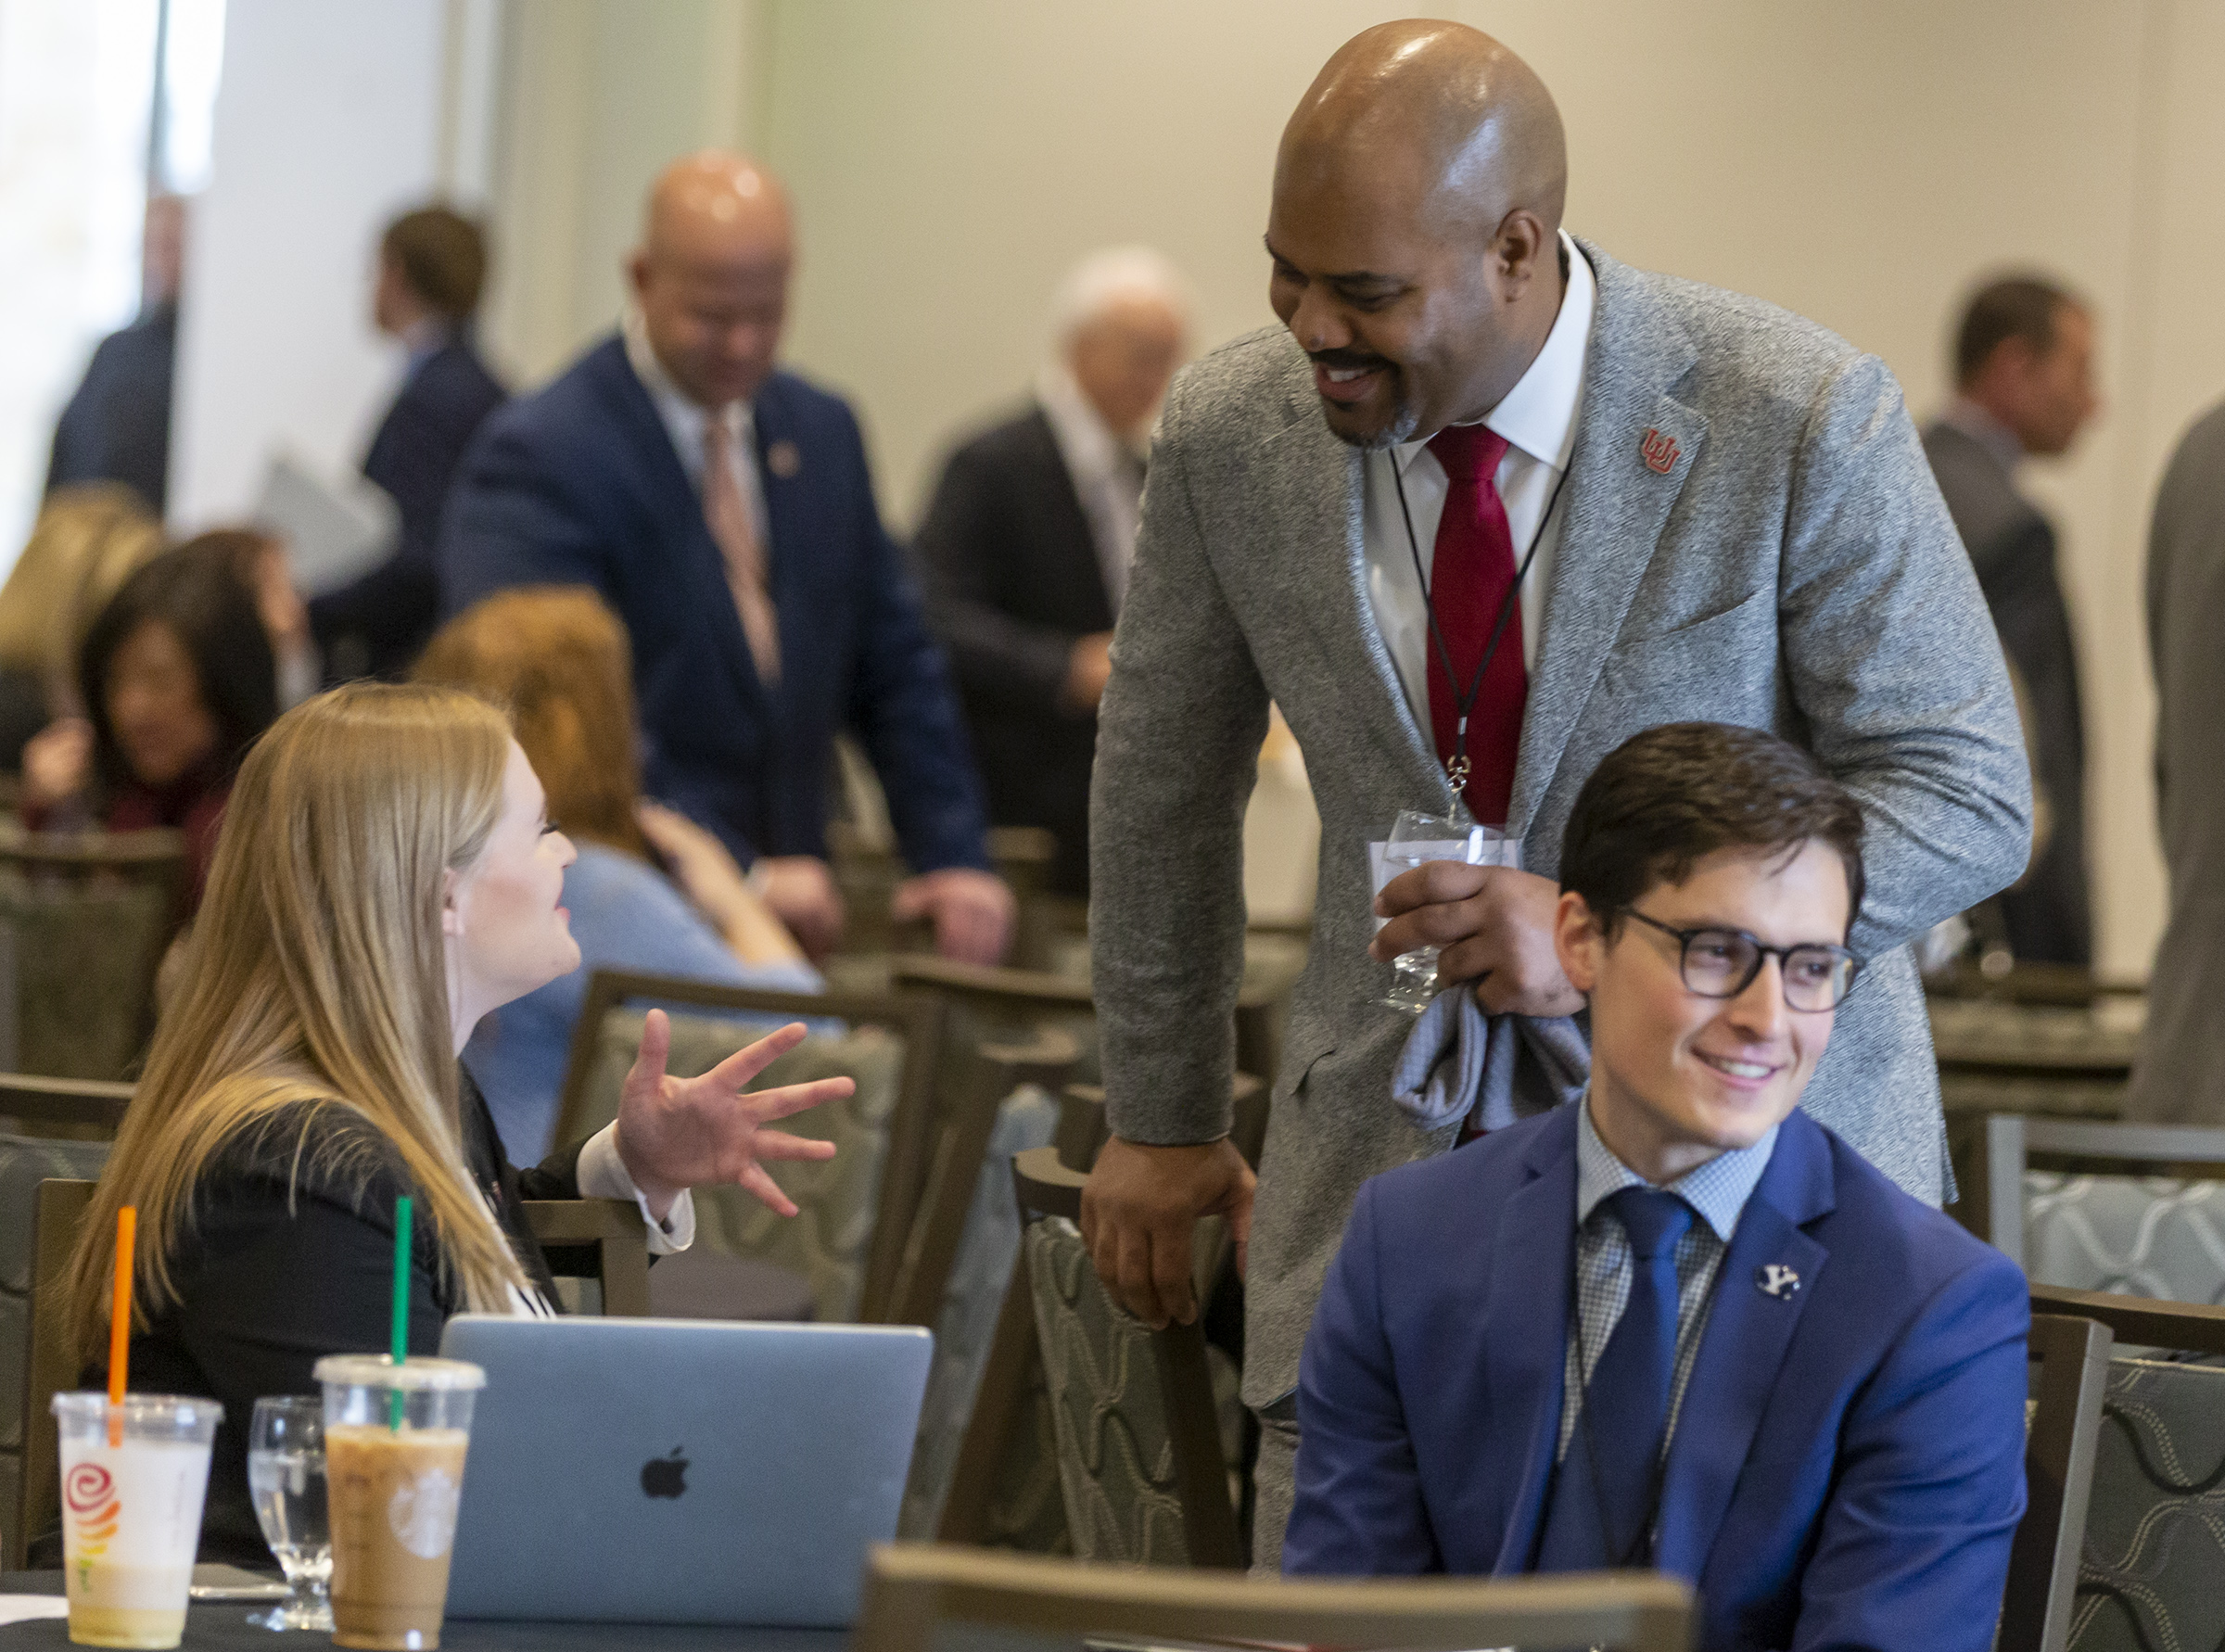 Annamarie Barnes, University of Utah student body president, talks with Marlon Lynch, chief safety officer at the U., prior to a student safety forum at the Alumni House on the U. campus in Salt Lake City on Friday, Jan. 24, 2020.